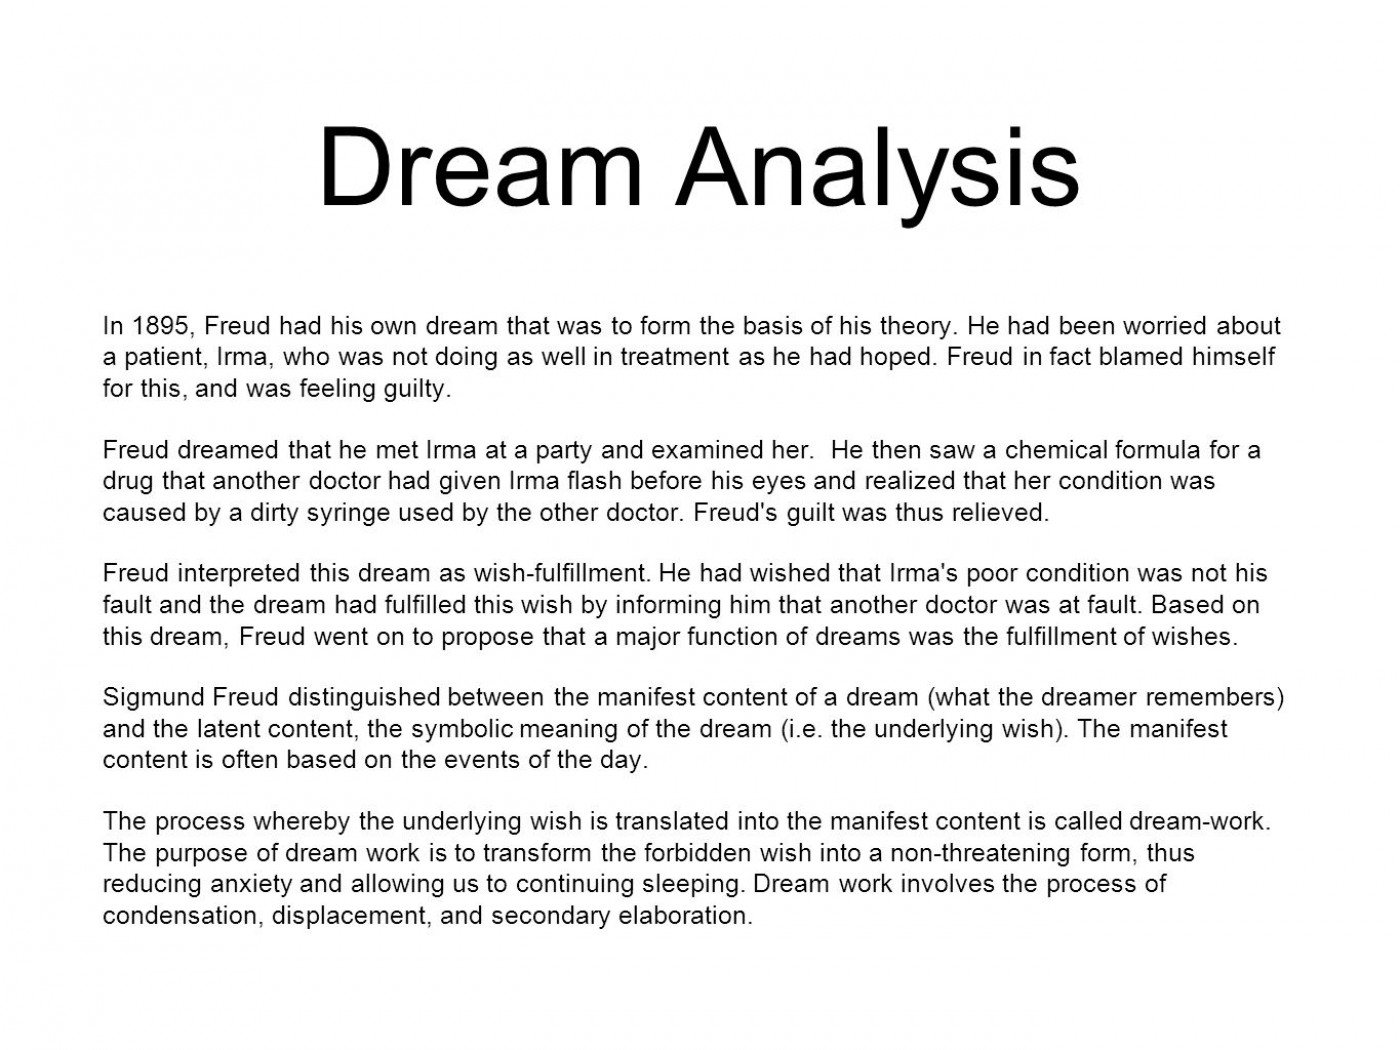 016 Research Paper Dreamanalysis Psychology Topics On Rare Dreams Articles Papers 1400